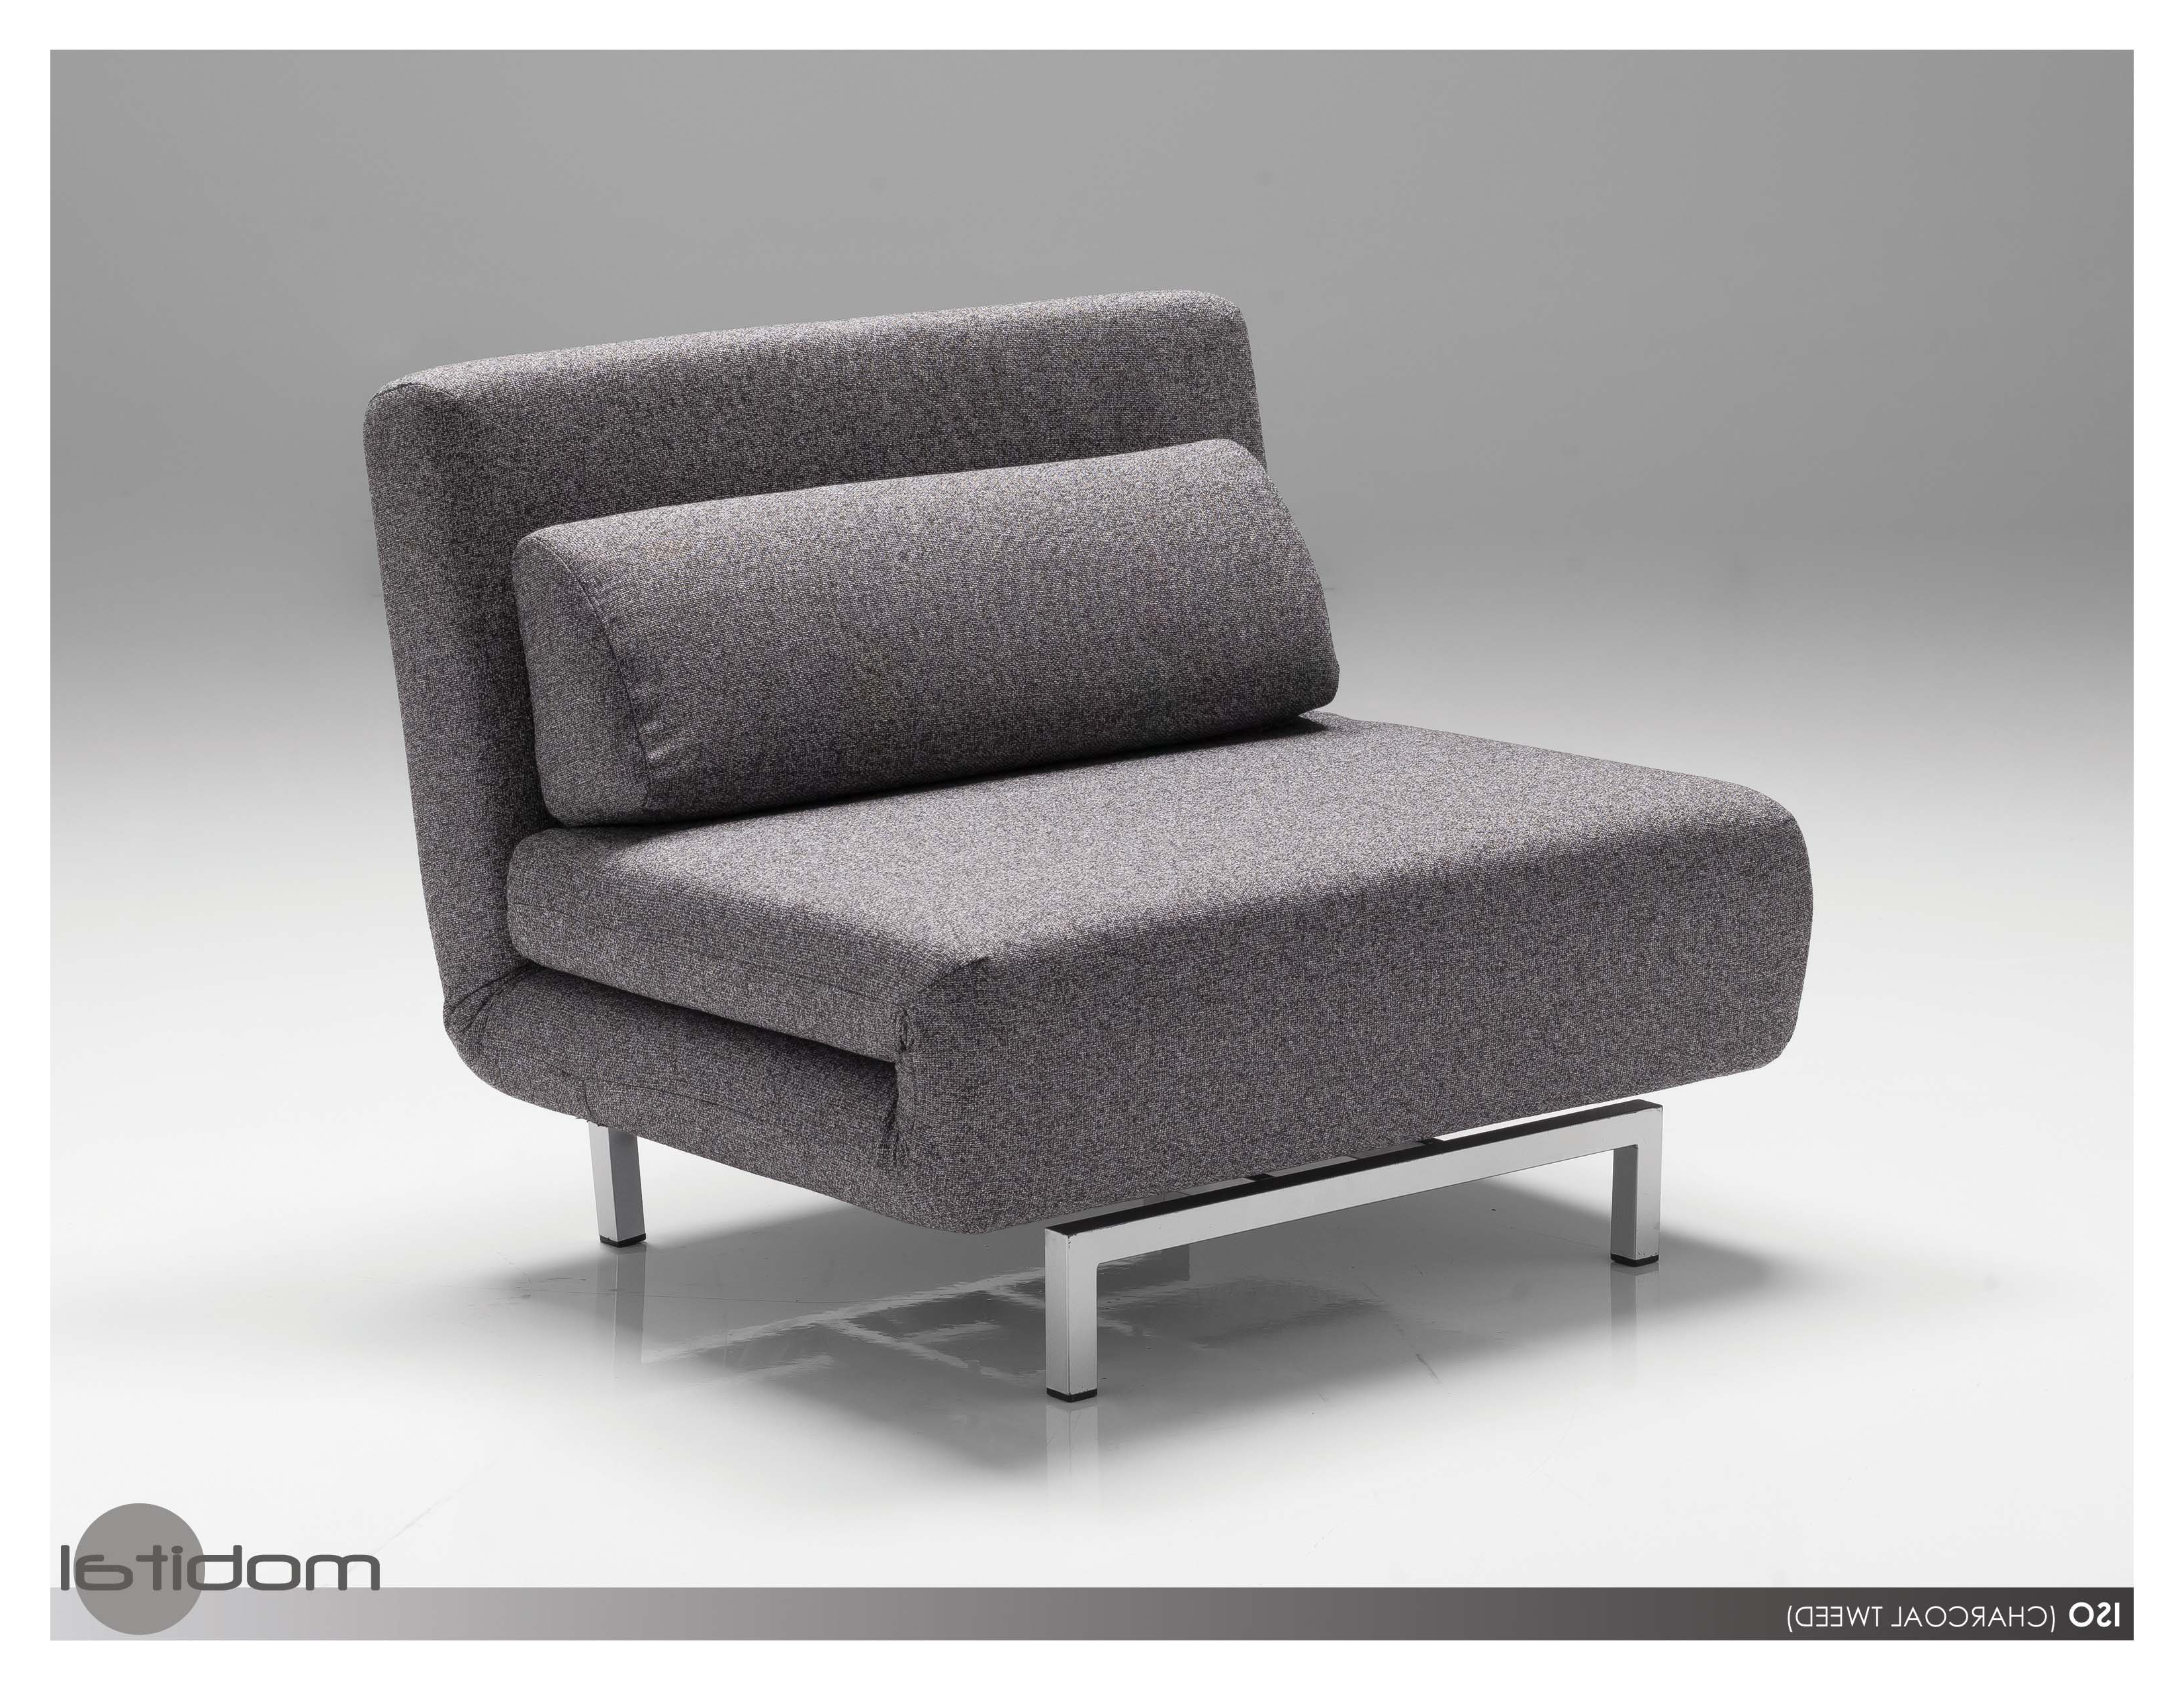 Mobital Iso Sofabed Single Modern Furnishings Inside Well Known Single Chair Sofa Bed (Gallery 7 of 20)